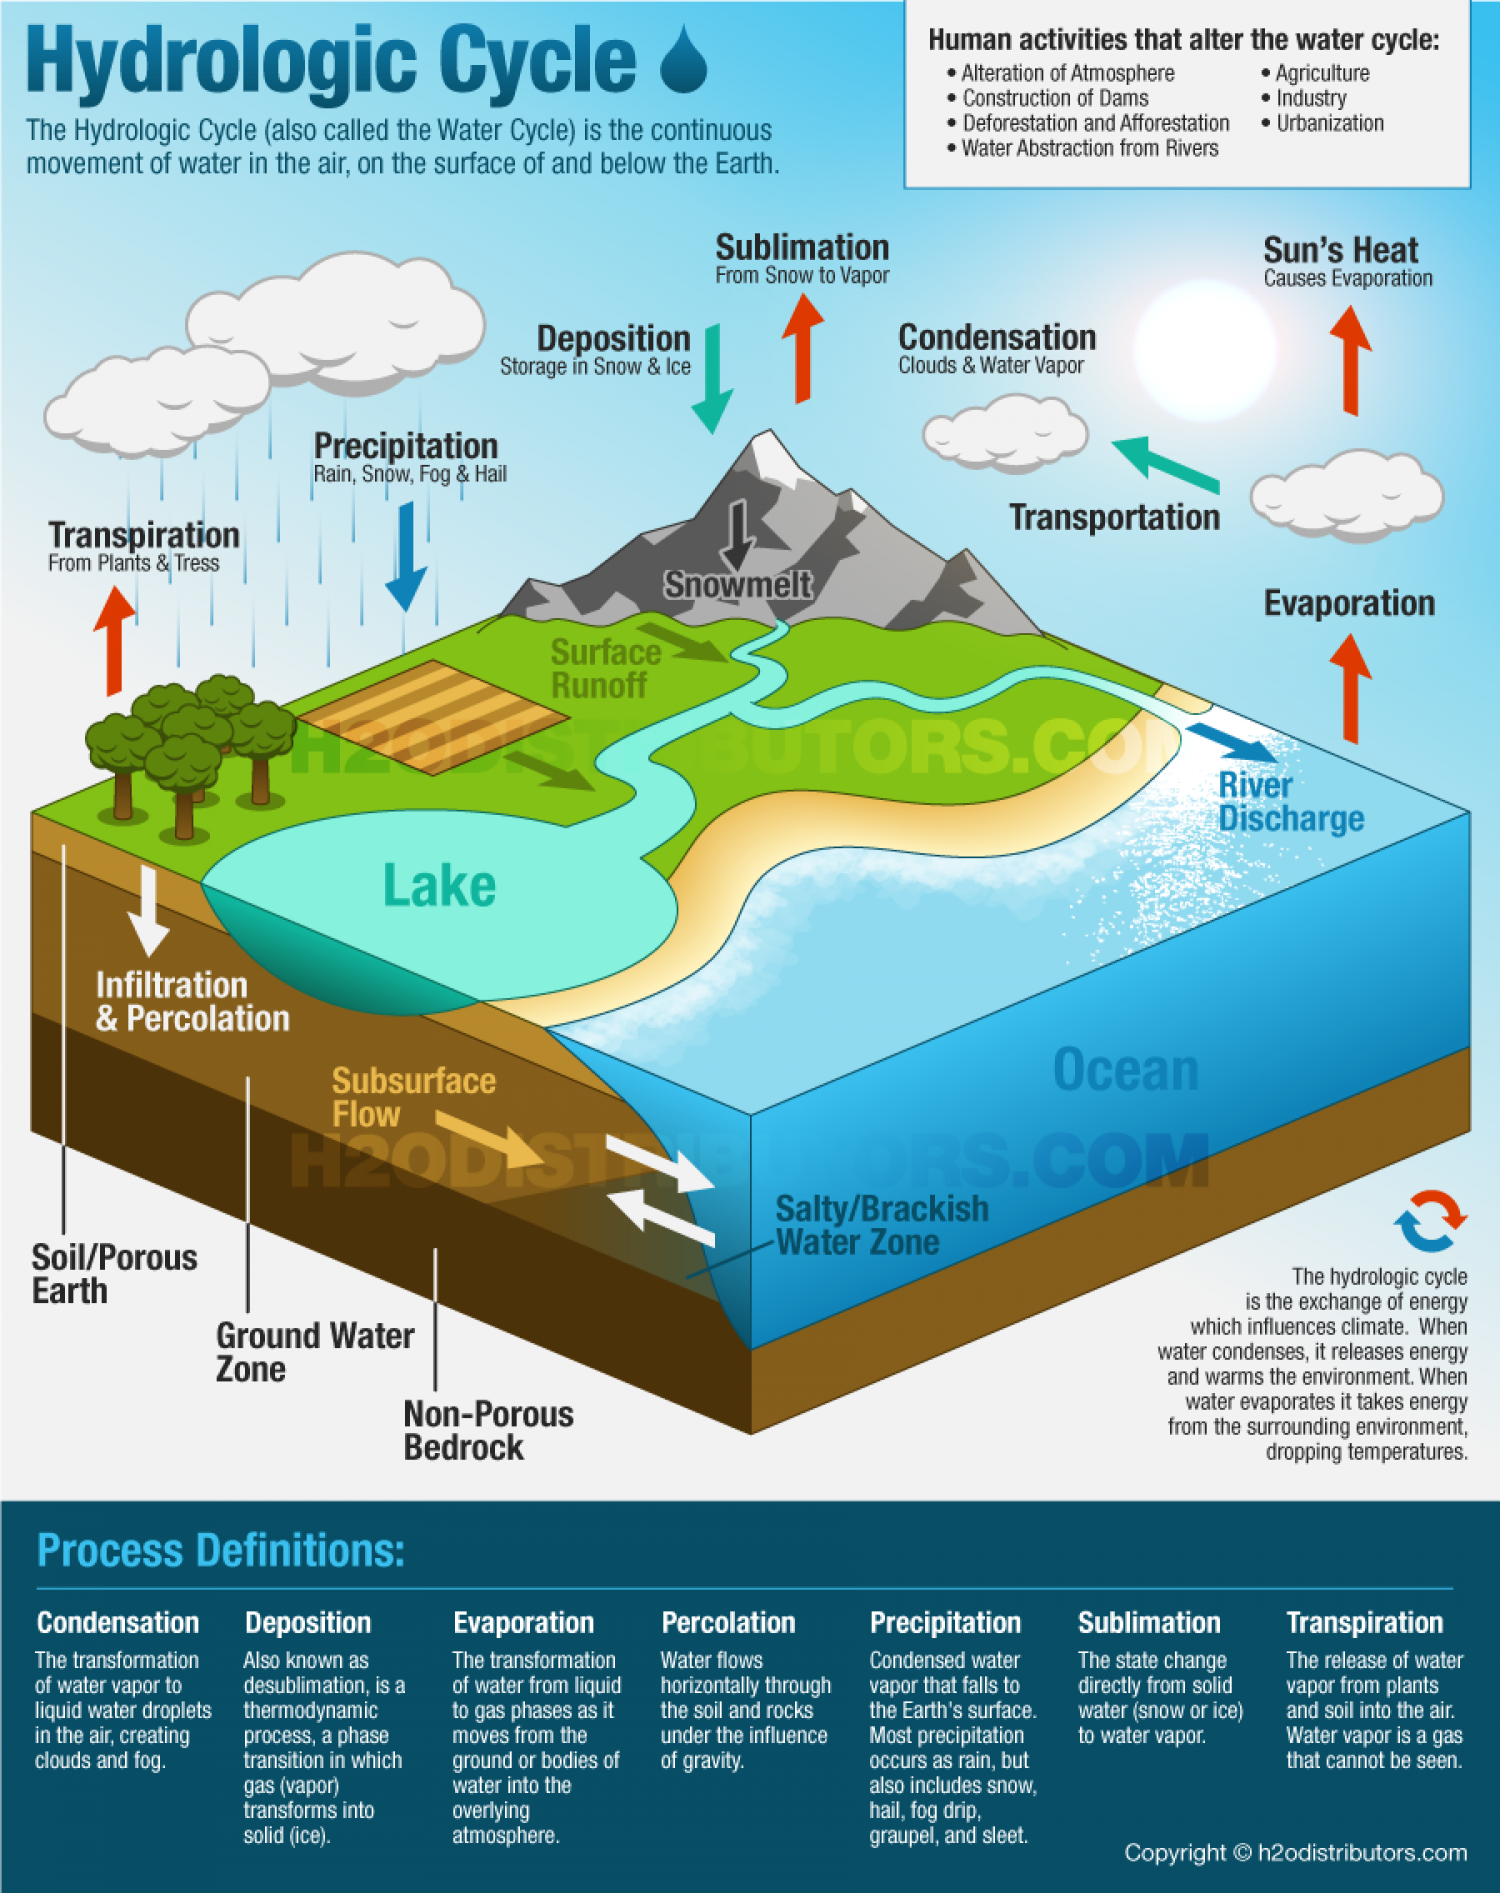 Hydrologic Cycle - The Big Picture